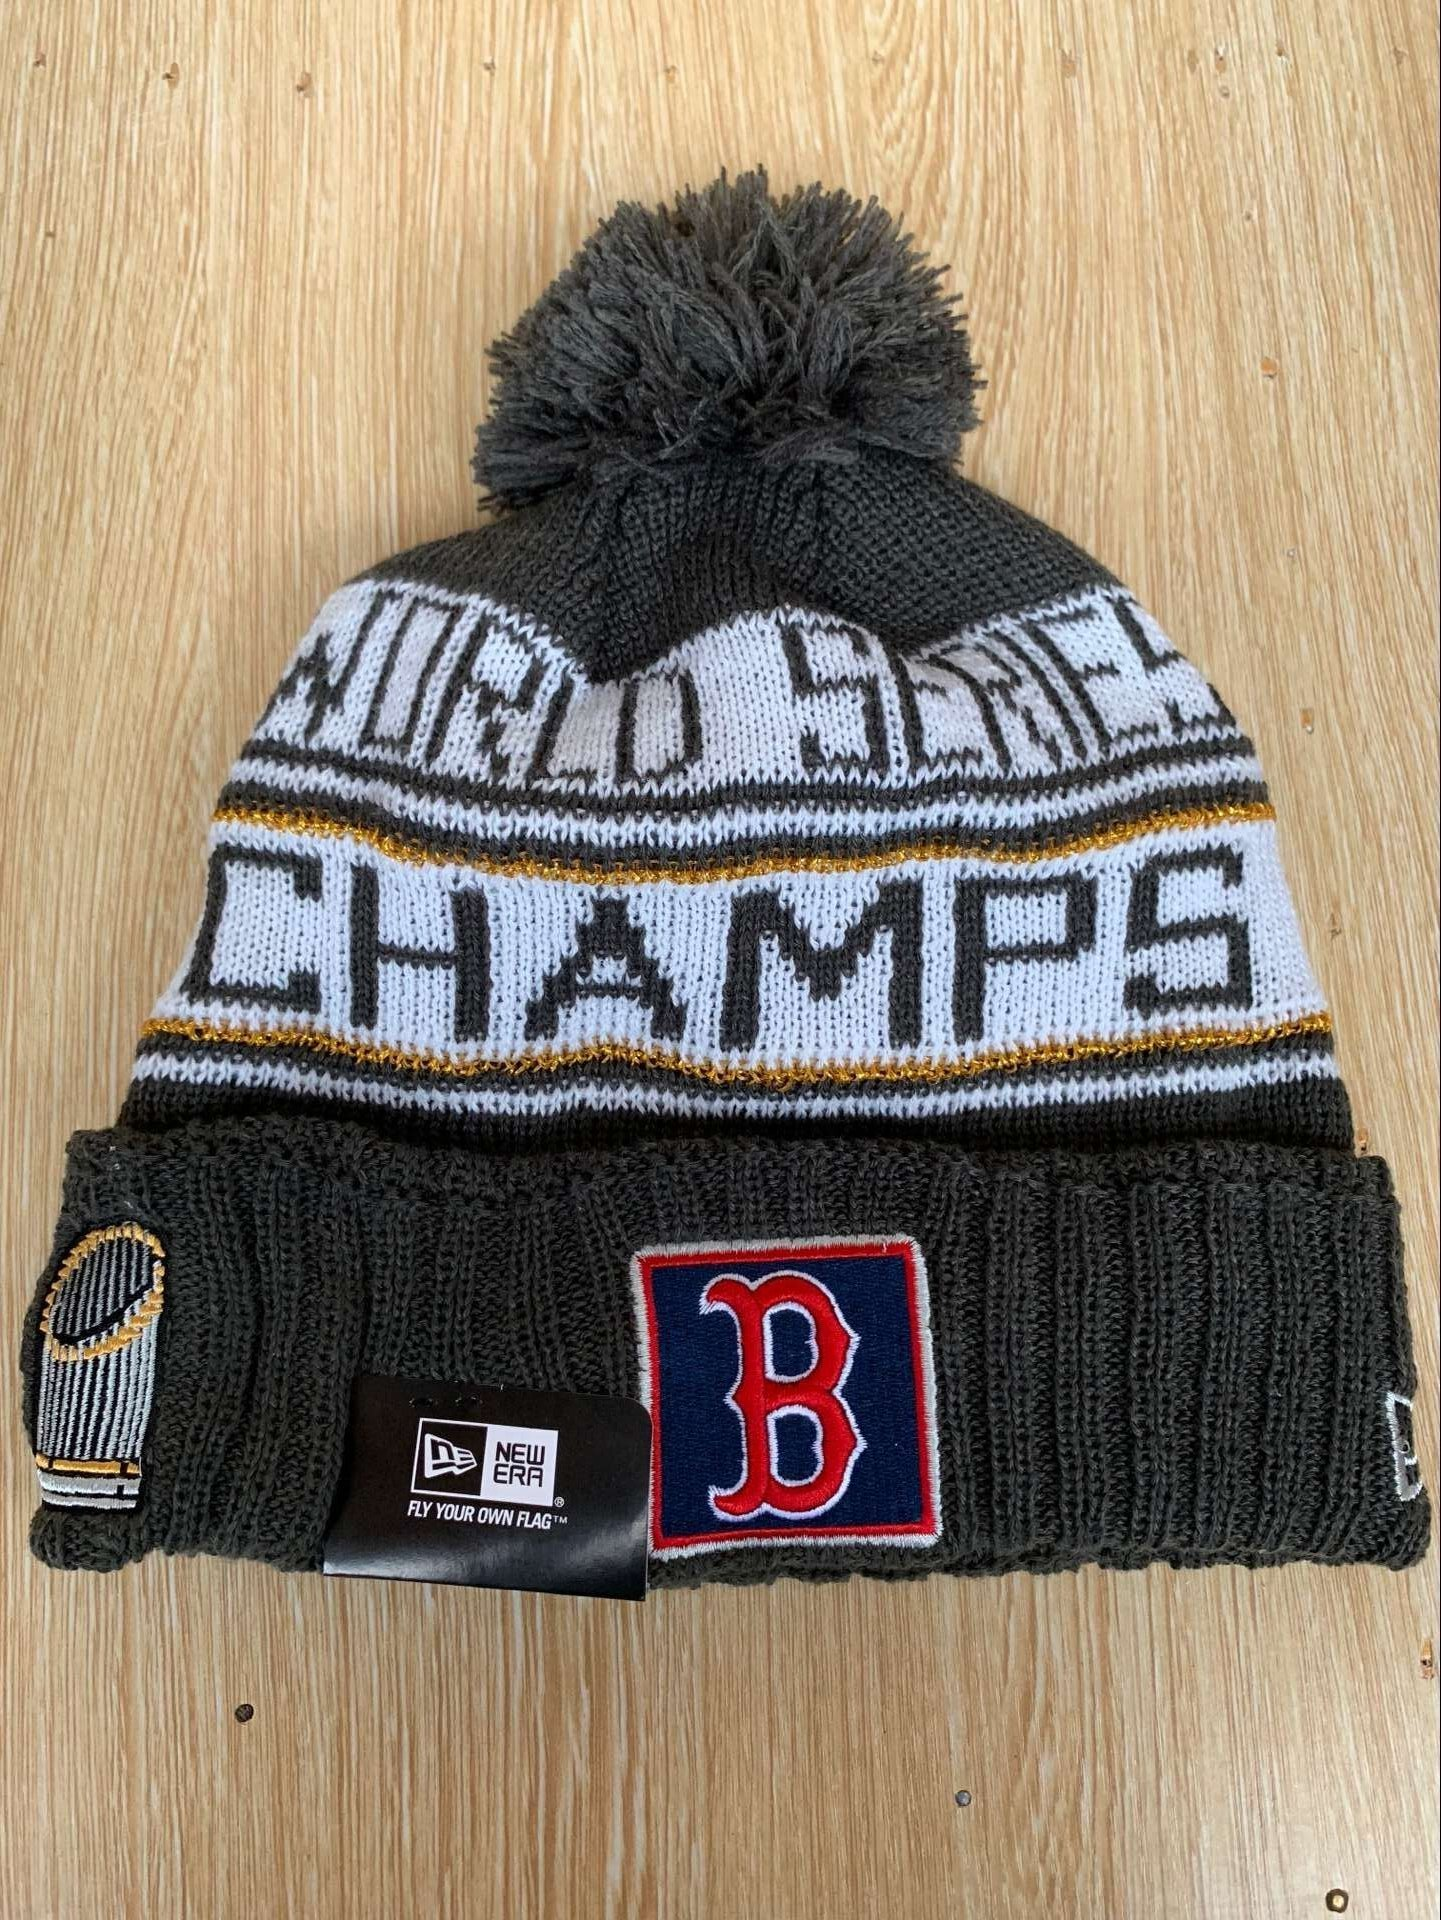 Red Sox 2018 World Series Champions Pom Knit Hat YD